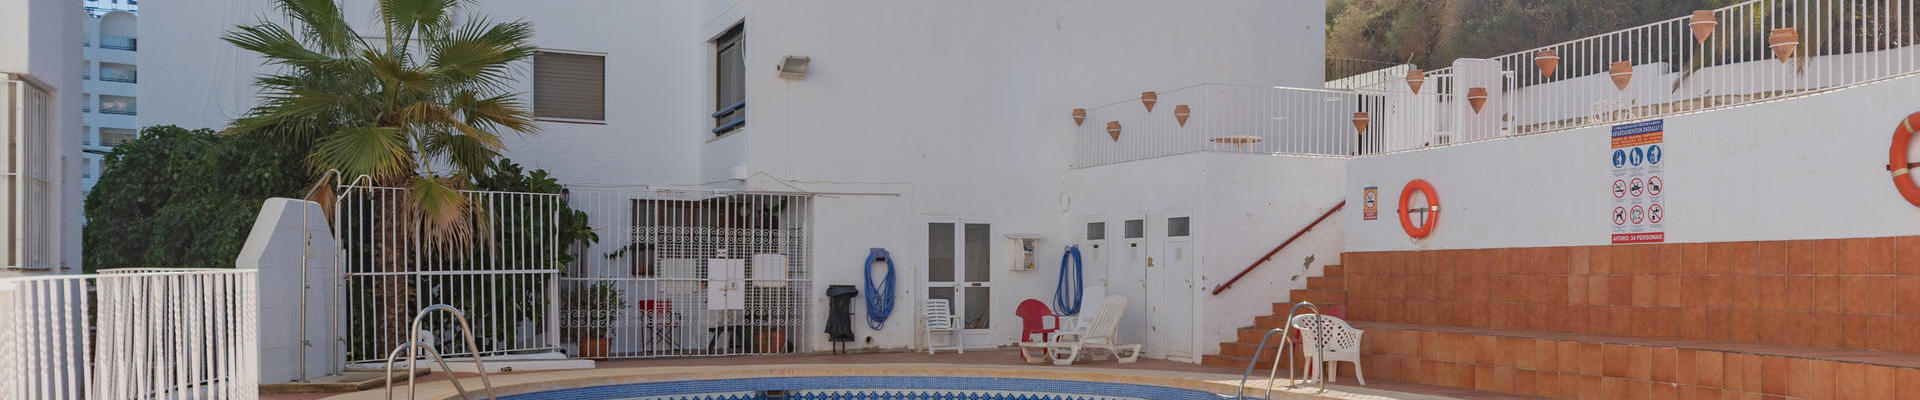 A1385: 3 Bedroom Apartment for Sale